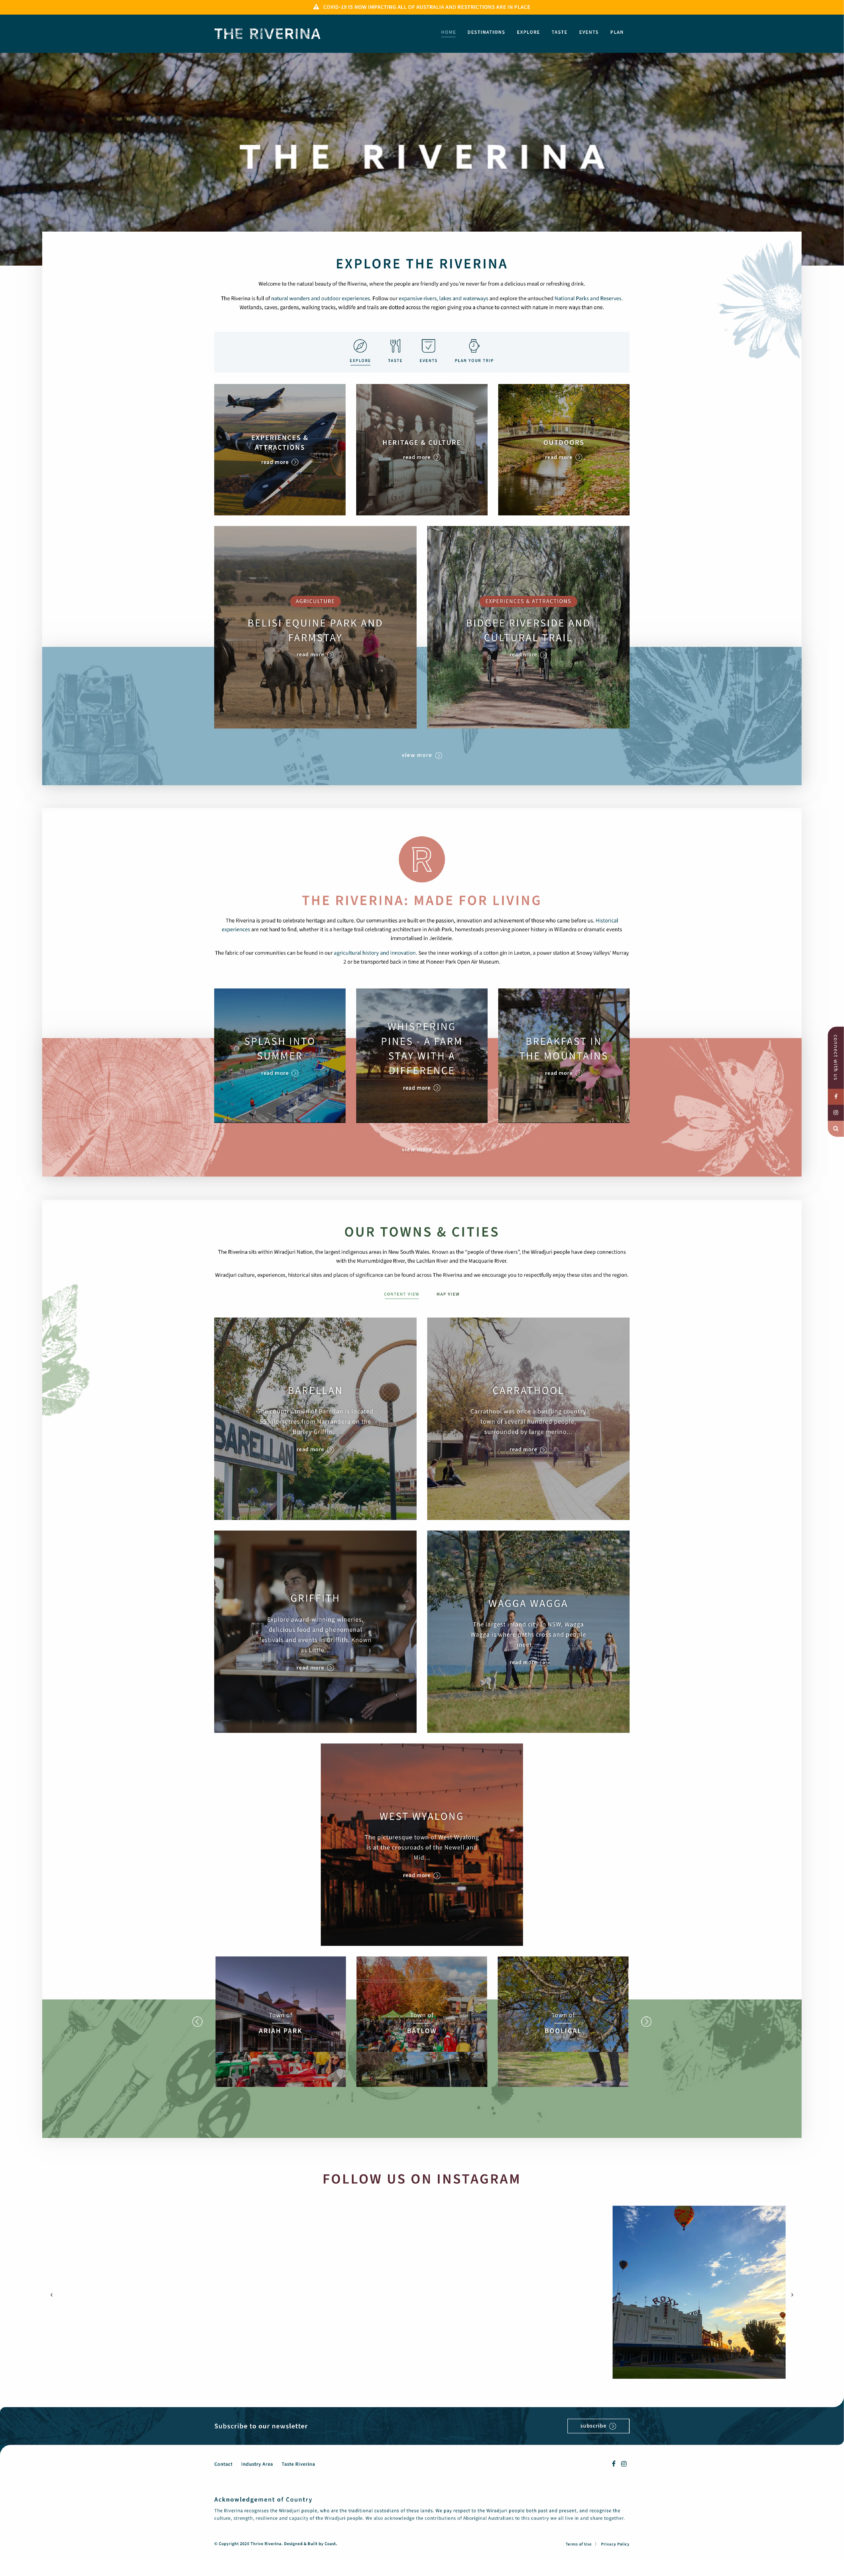 Website Design & Development for The Riverina